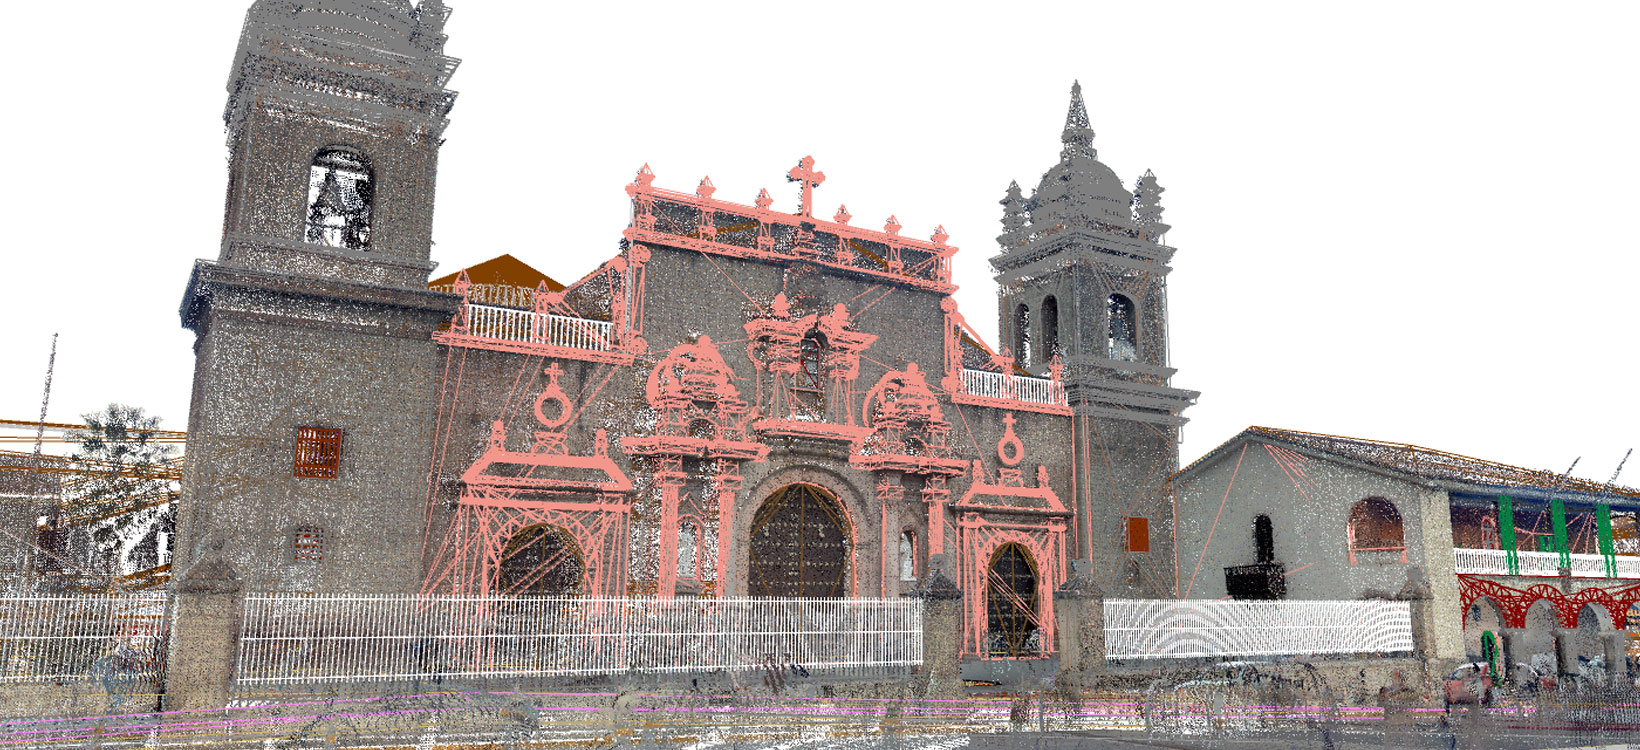 Ayacucho's smart digital city project